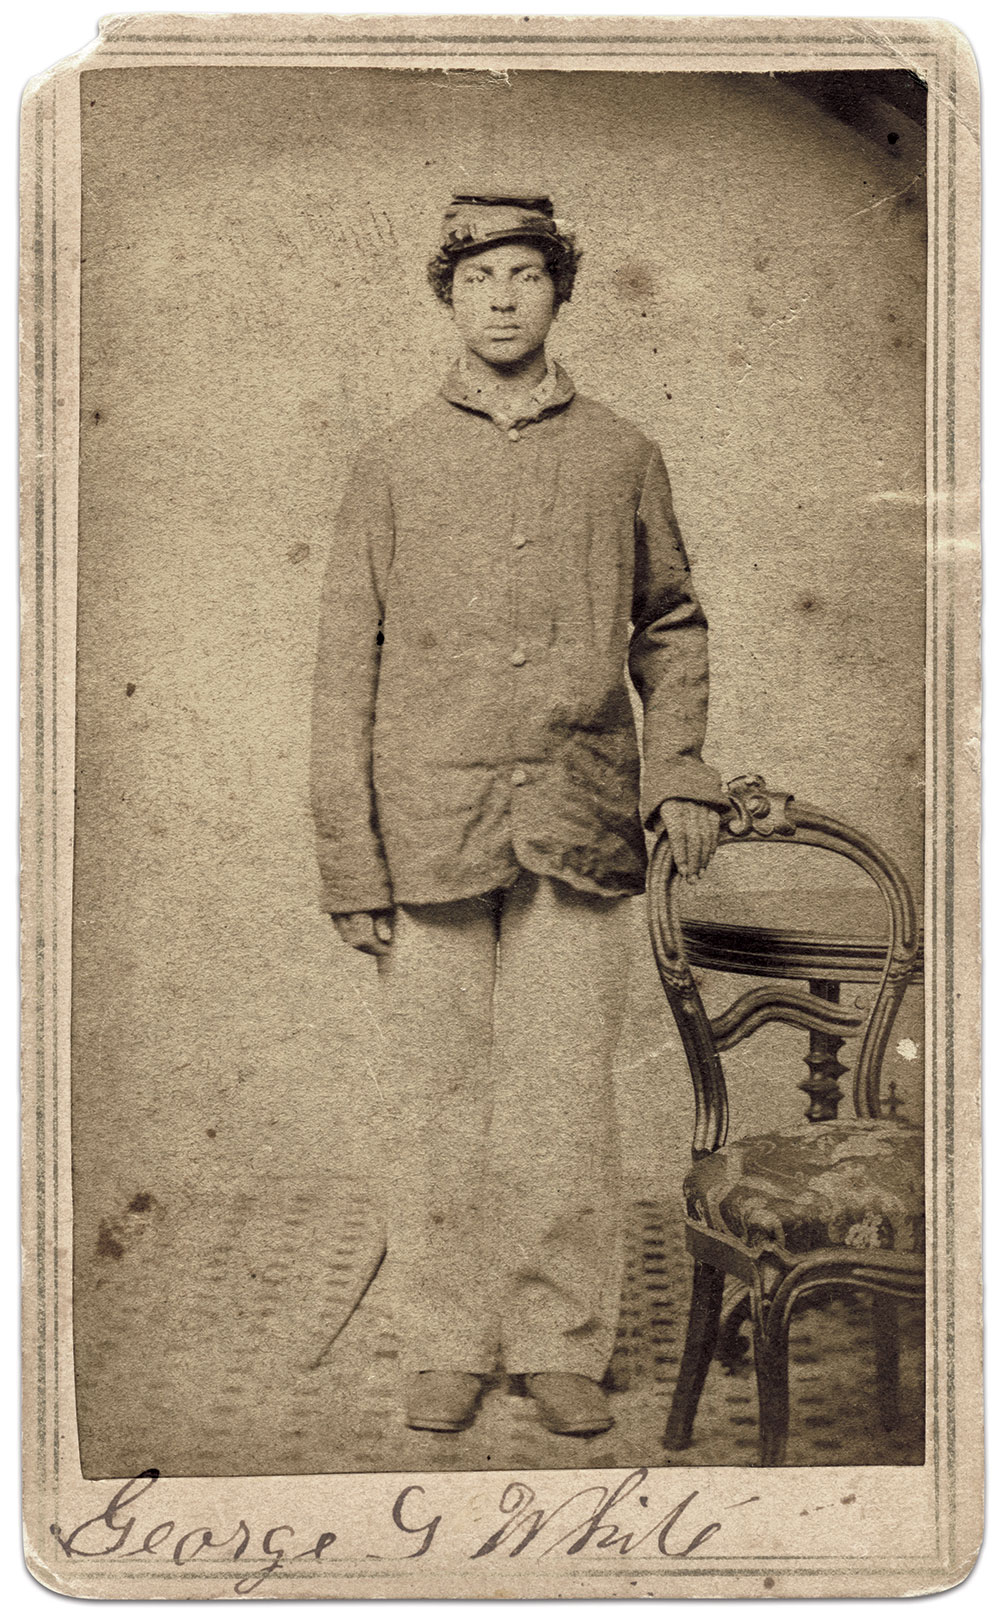 Carte de visite by Lawrence of Worcester, Mass. Paul Russinoff Collection.